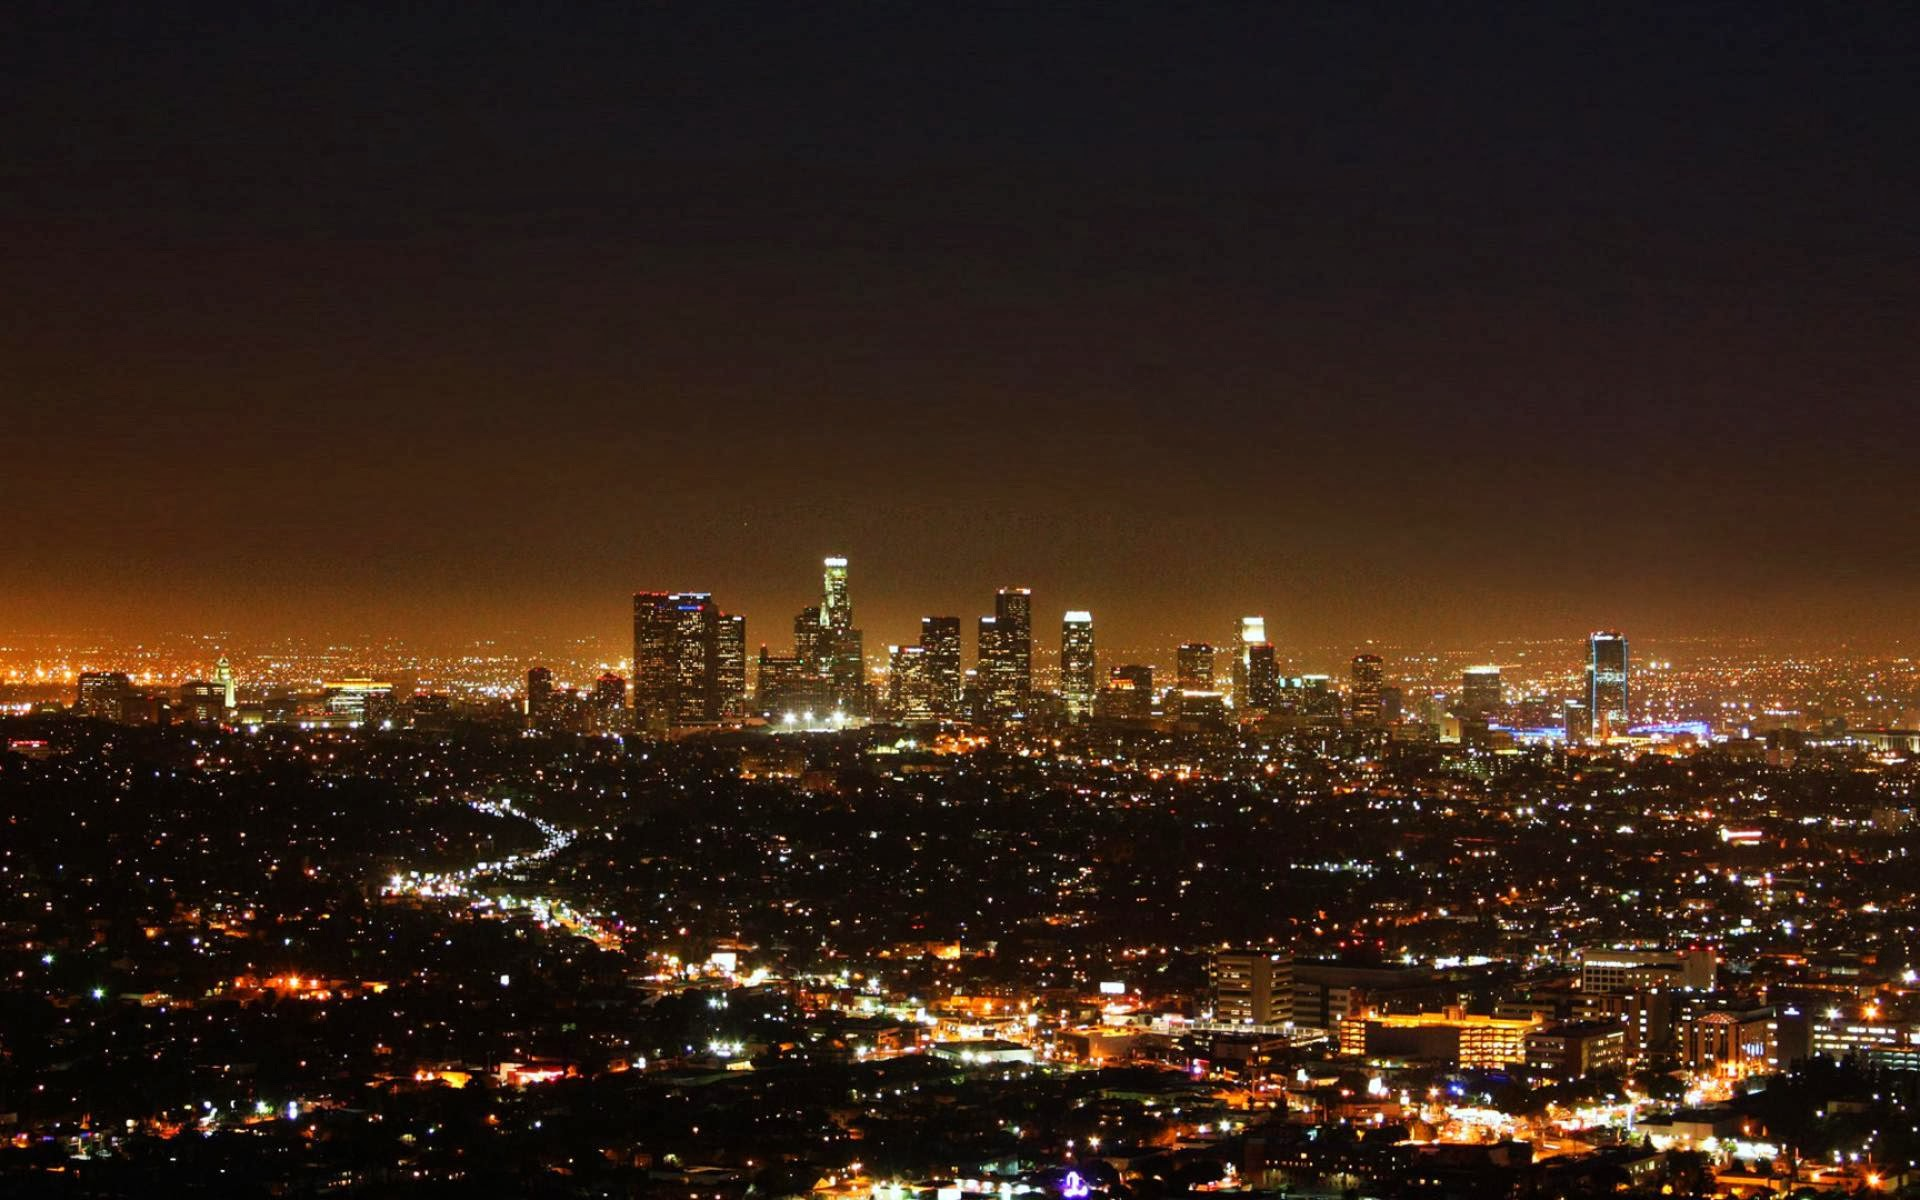 los angeles city nights full hd desktop wallpapers 1080p